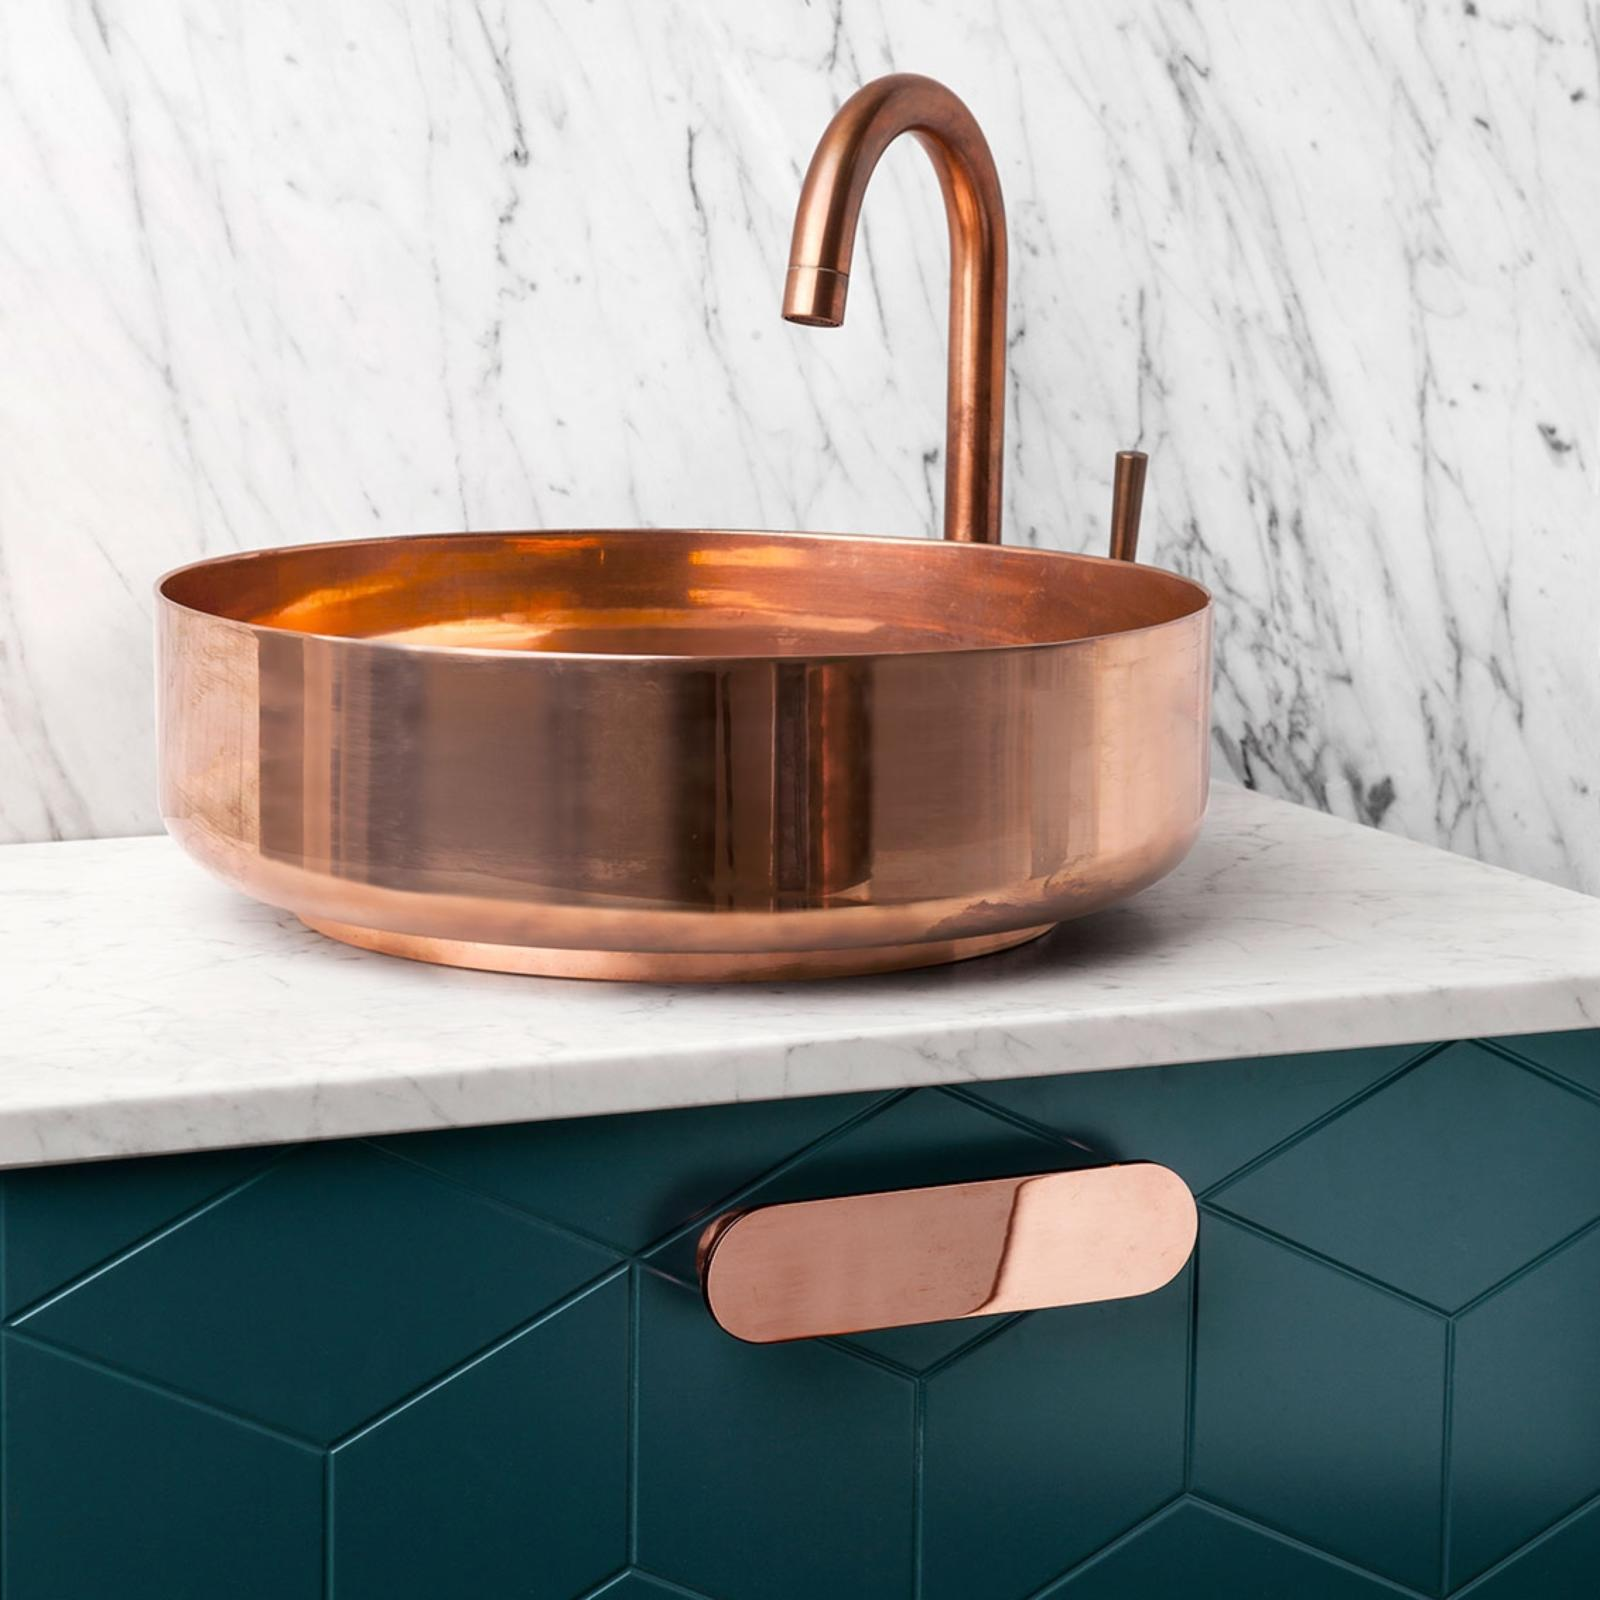 Green bathroom vanity from Superfront with copper details and marble top